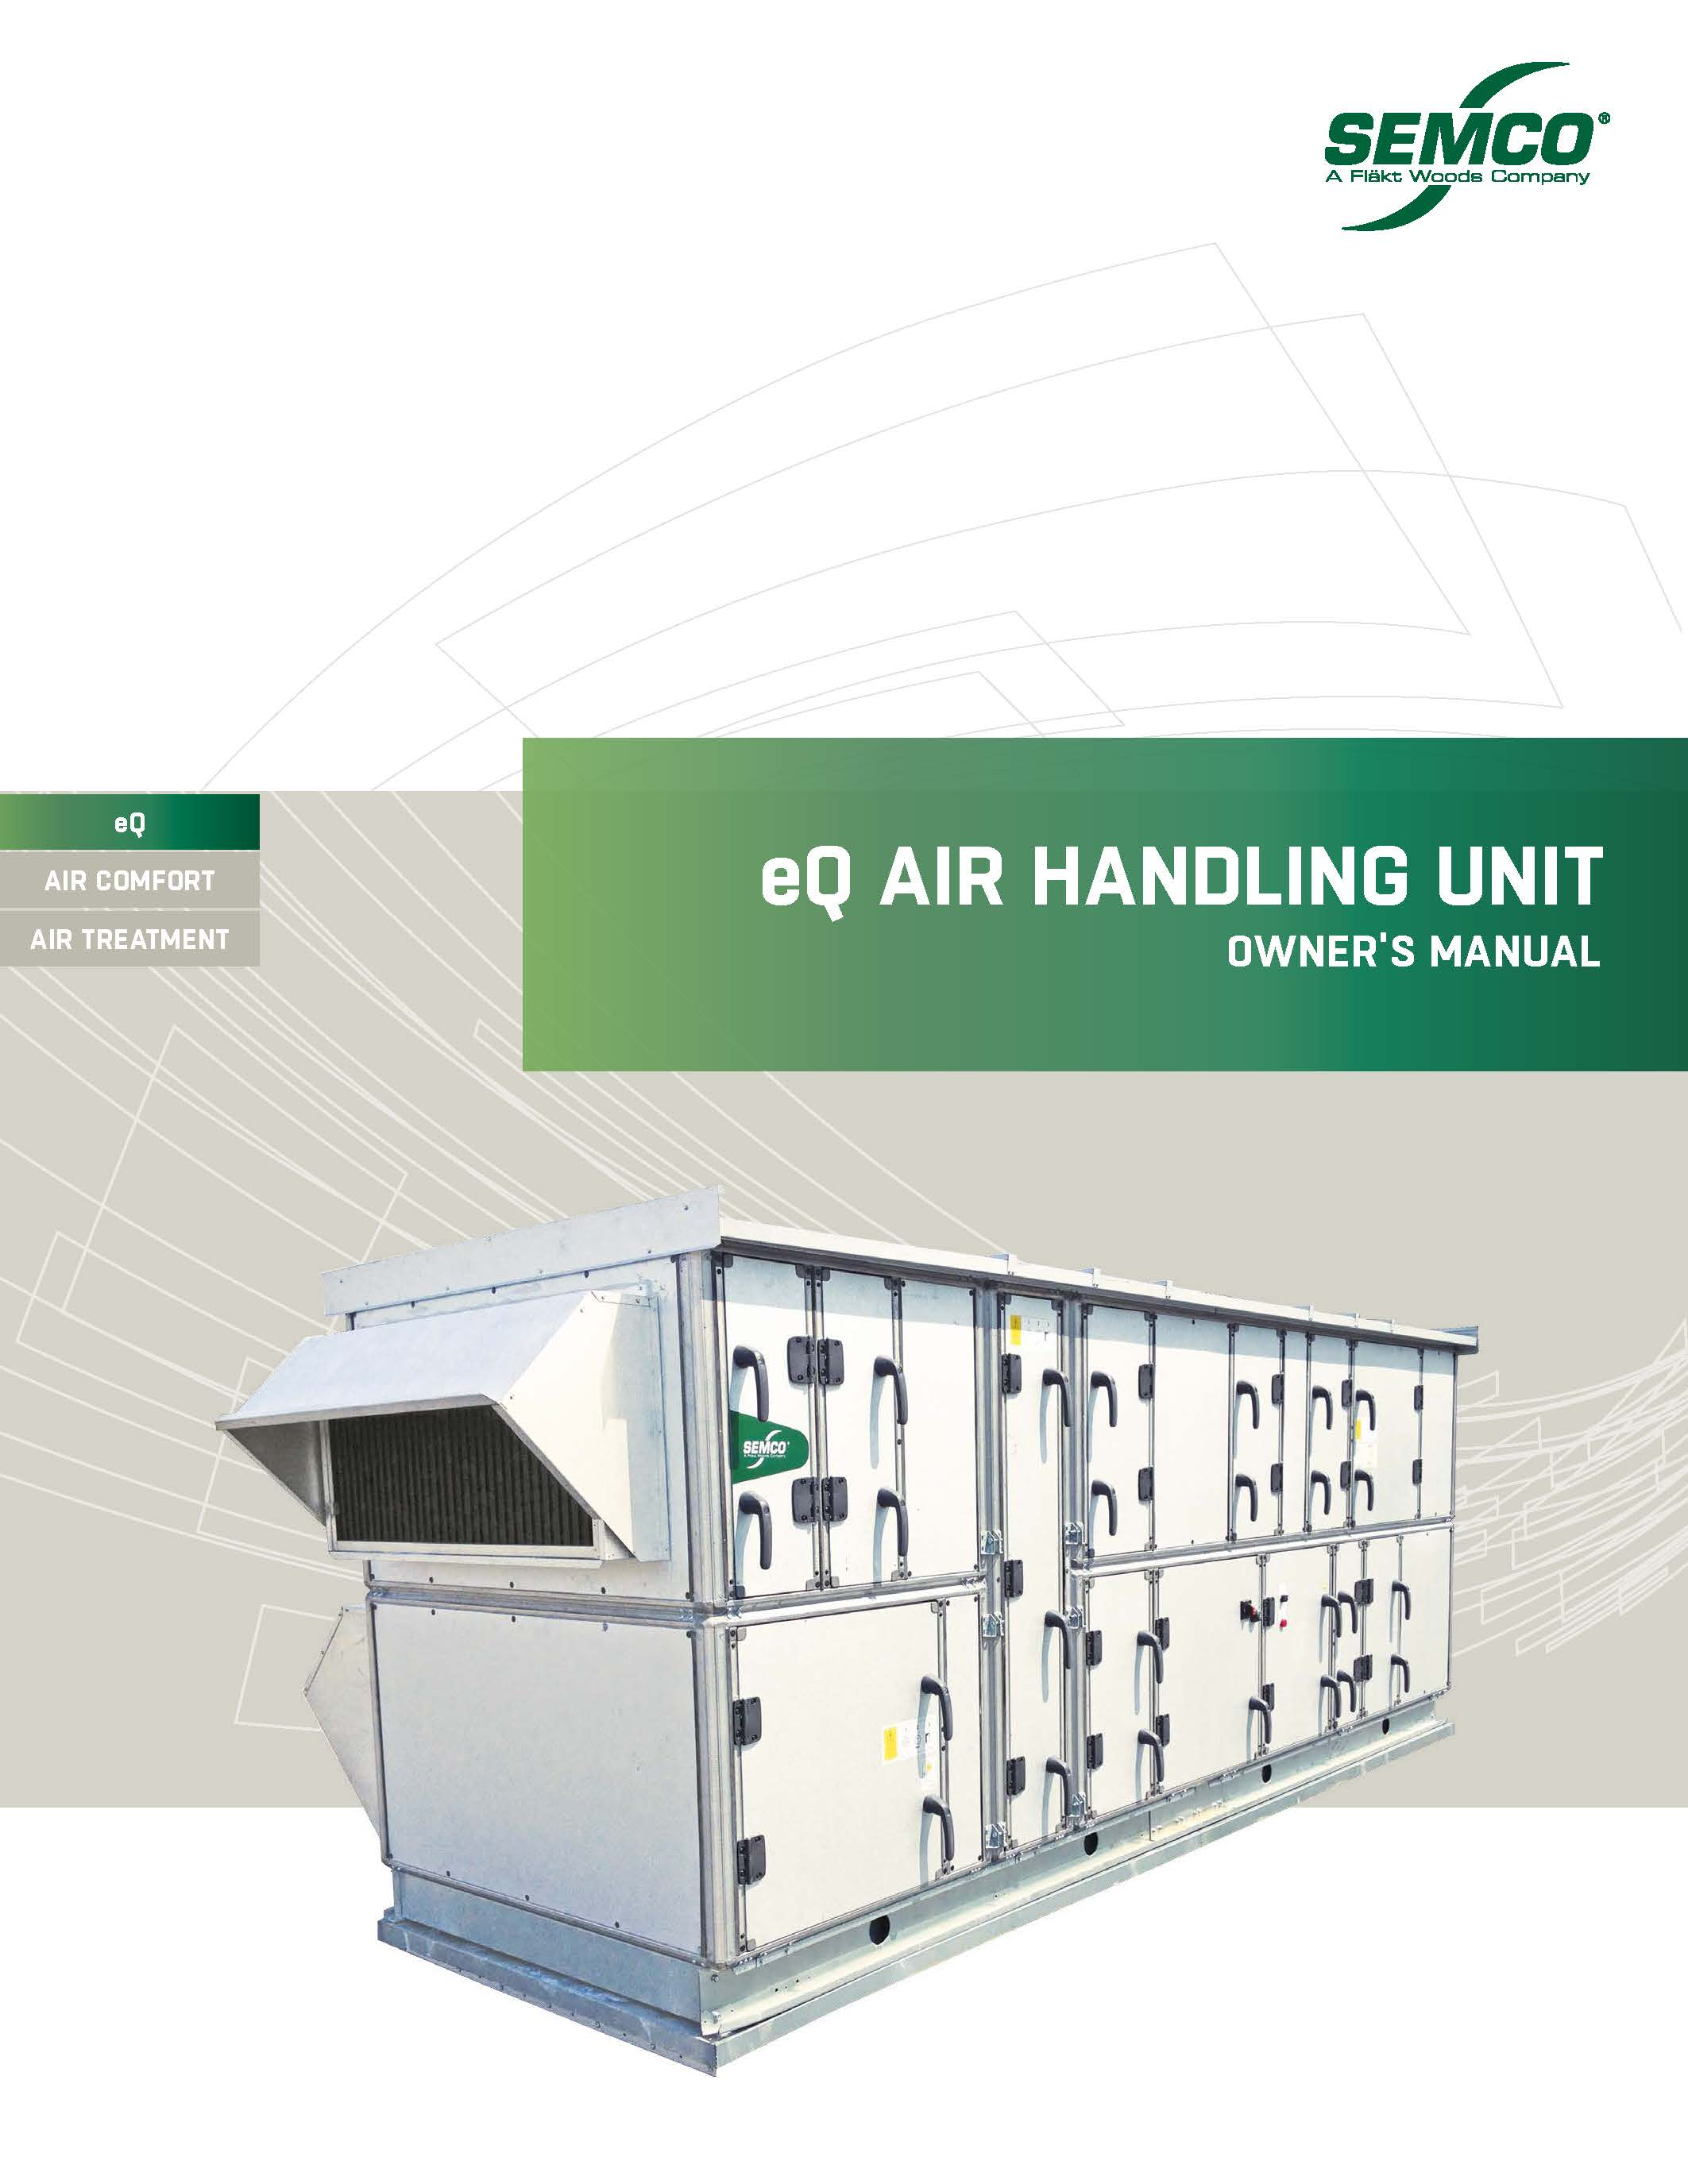 eQ_Air_Handling_Unit_Owners_Manual_-_SEMCO_10-15.jpg